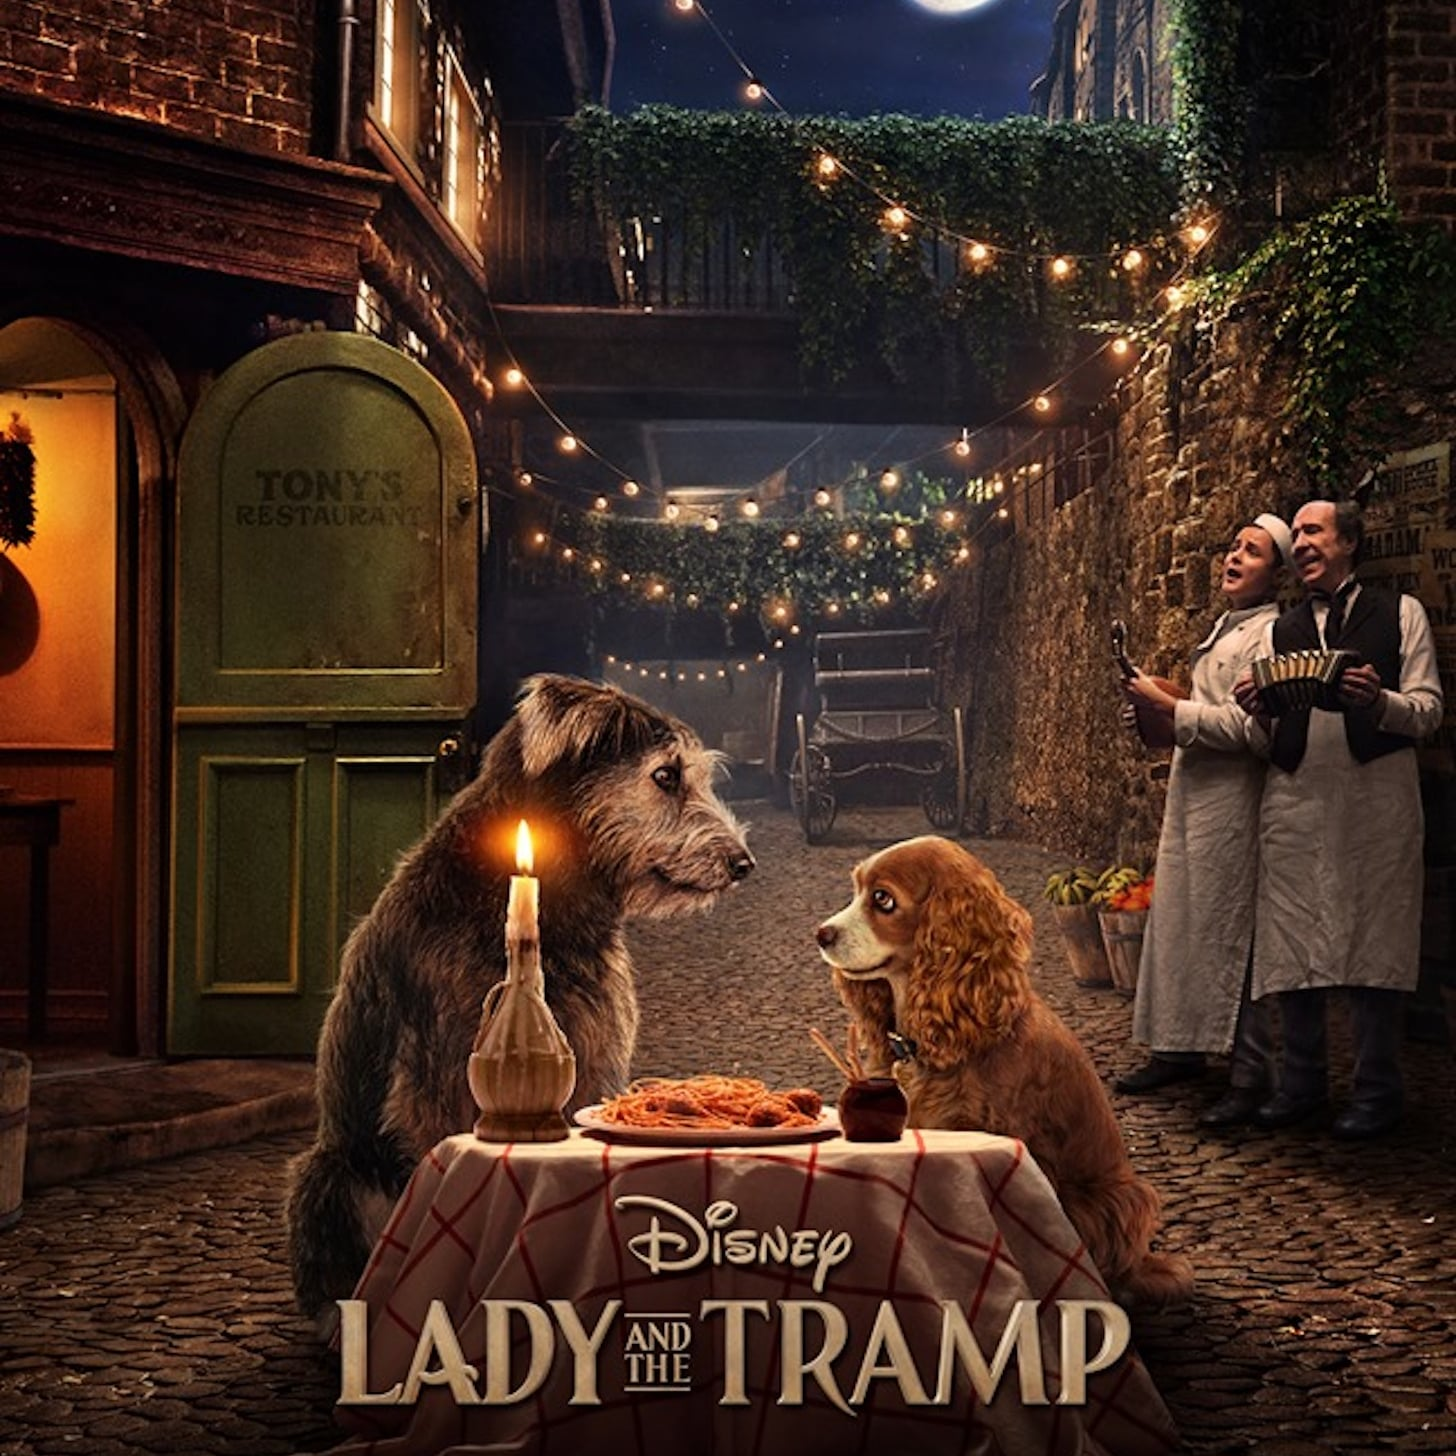 Lady And The Tramp Live Action Remake Movie Poster Popsugar Entertainment